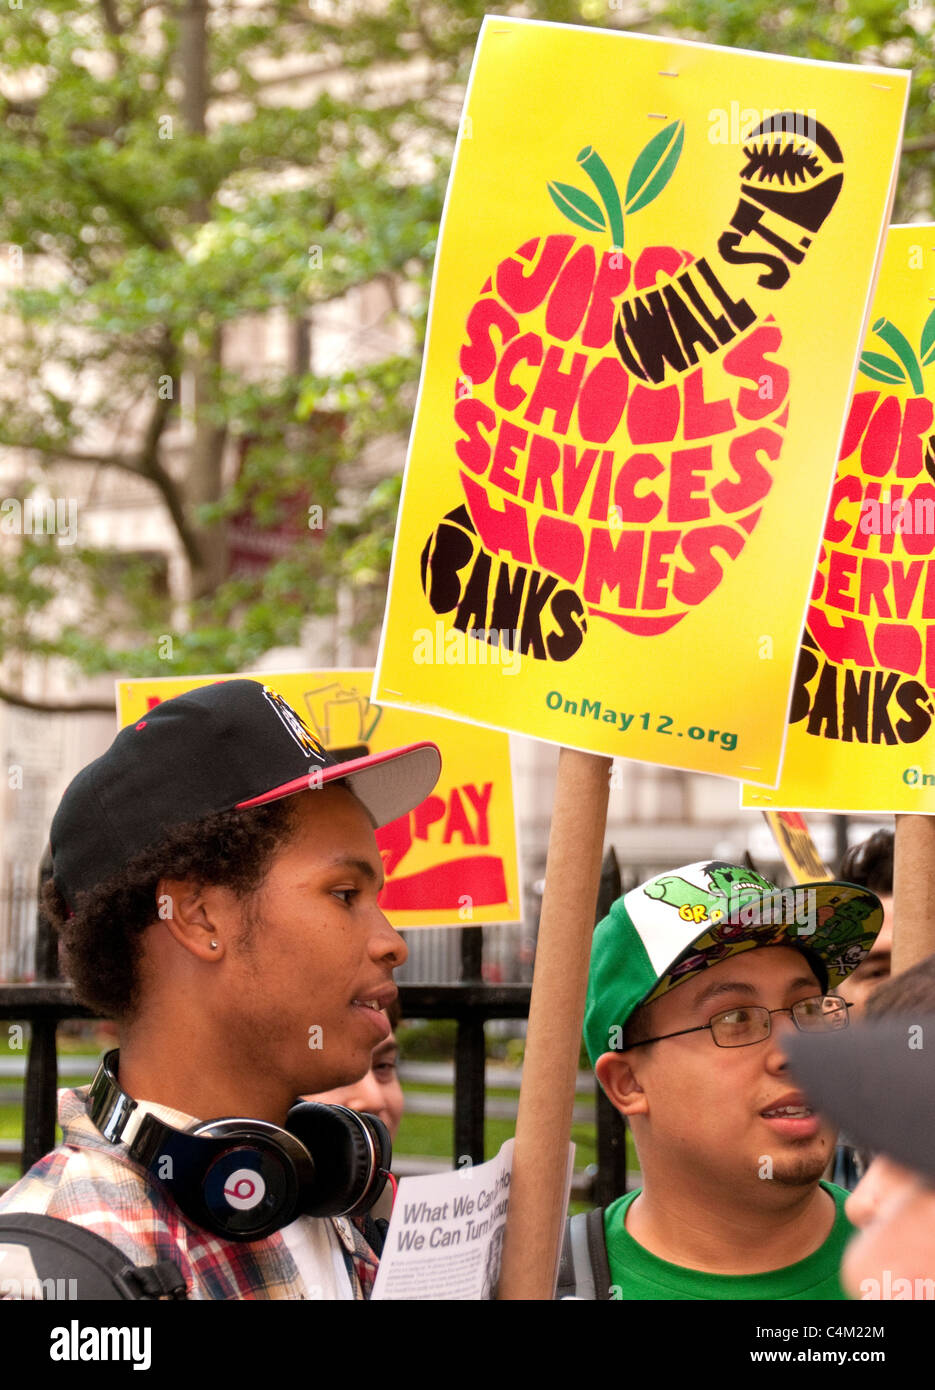 New York City, a protest against big banks, war, racial discrimination and in favor of more money for education...See - Stock Image